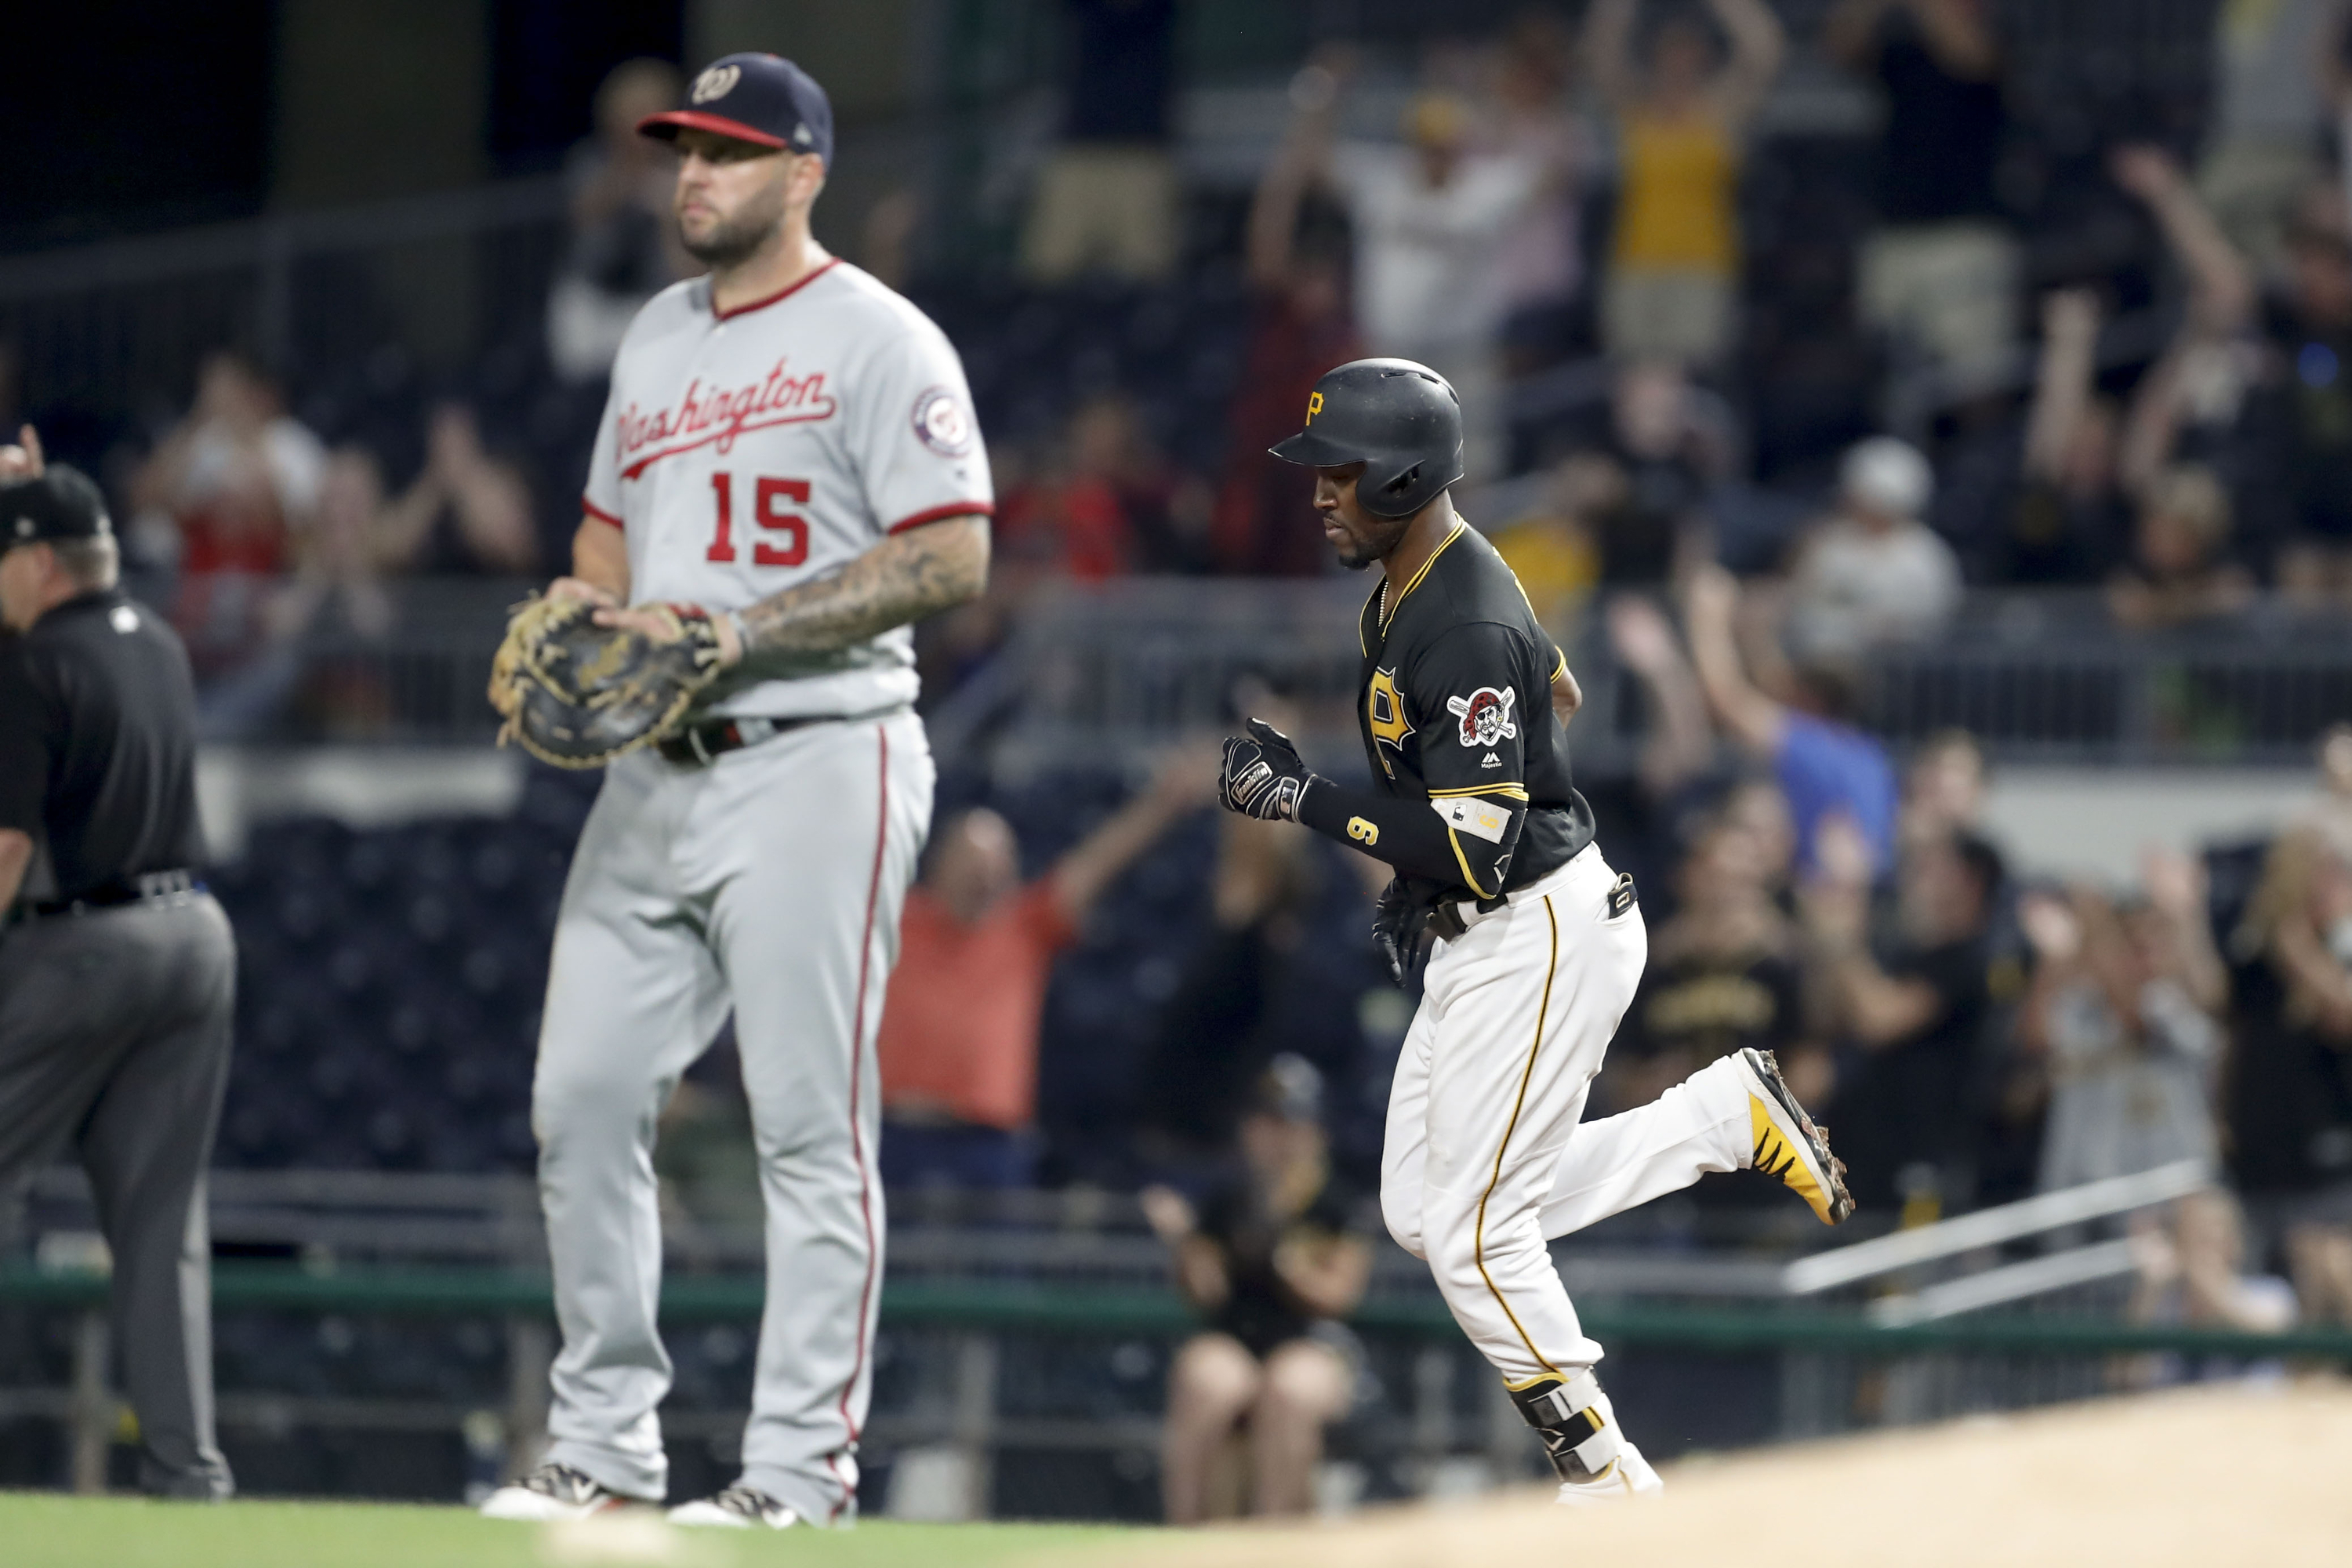 Nationals squander late lead, lose to Pirates